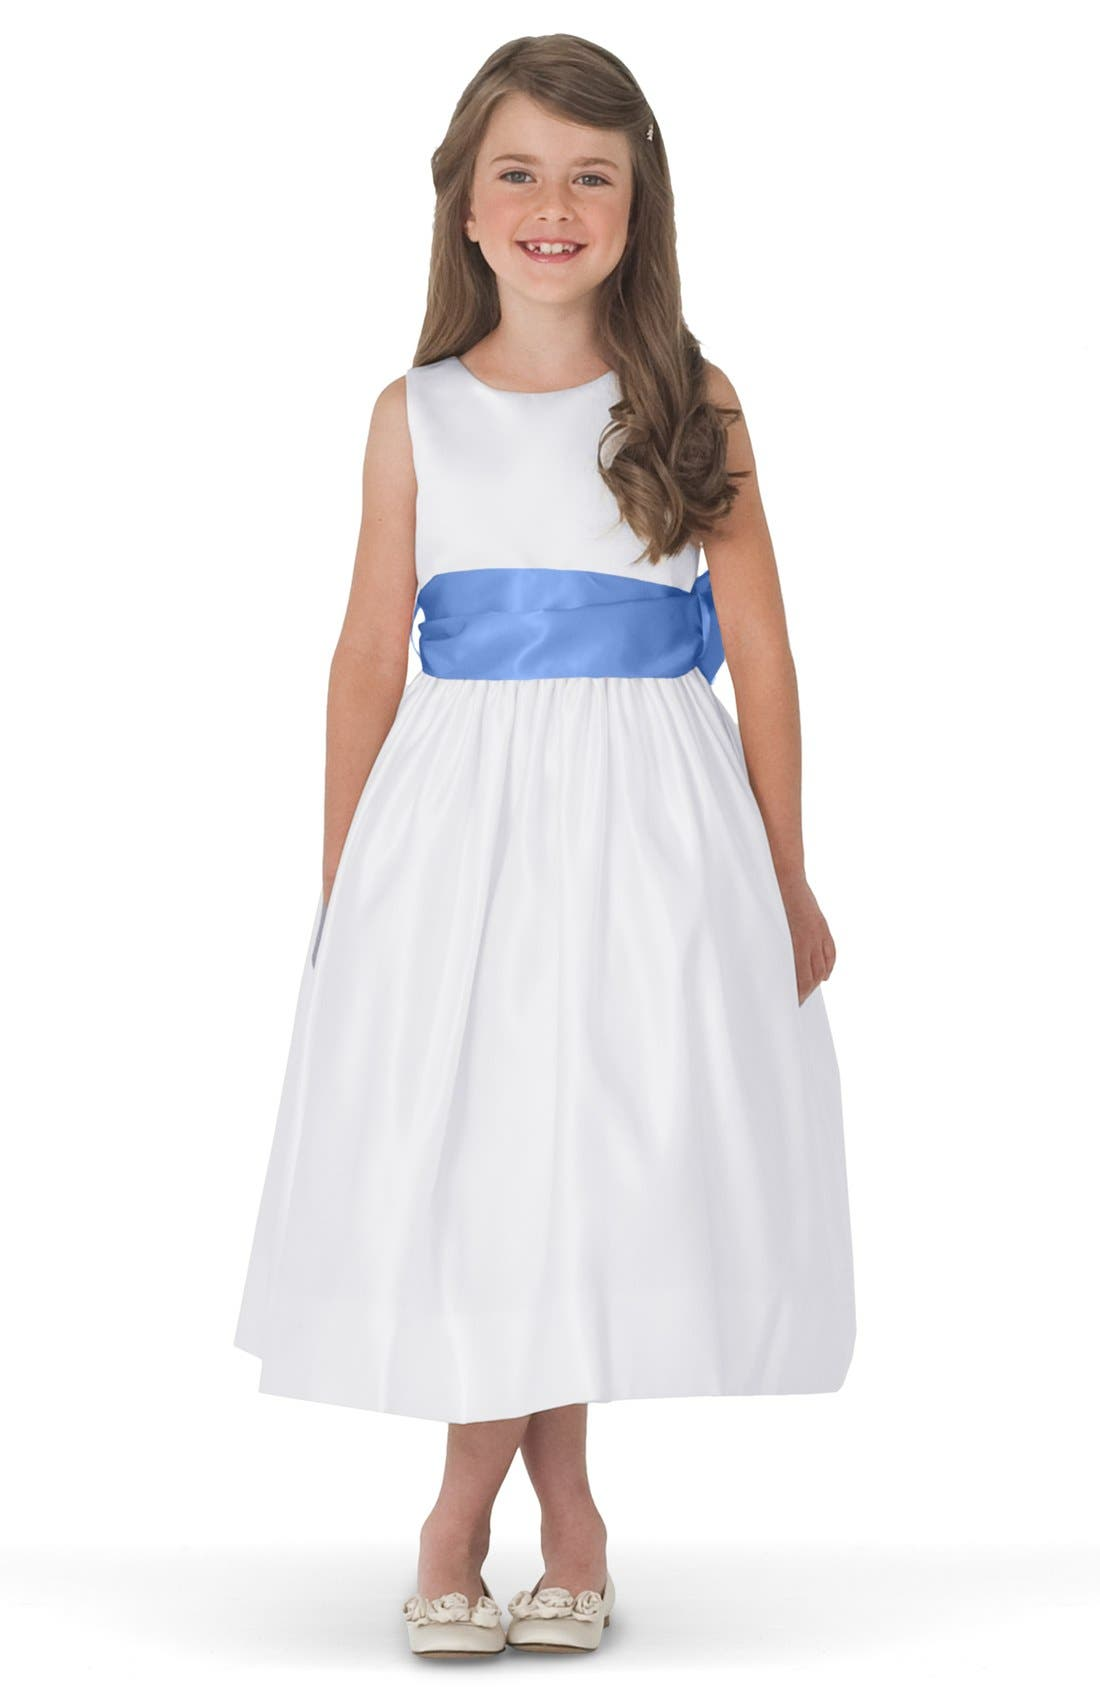 Little Girls' Dresses: Knit, Sleeveless & Satin | Nordstrom